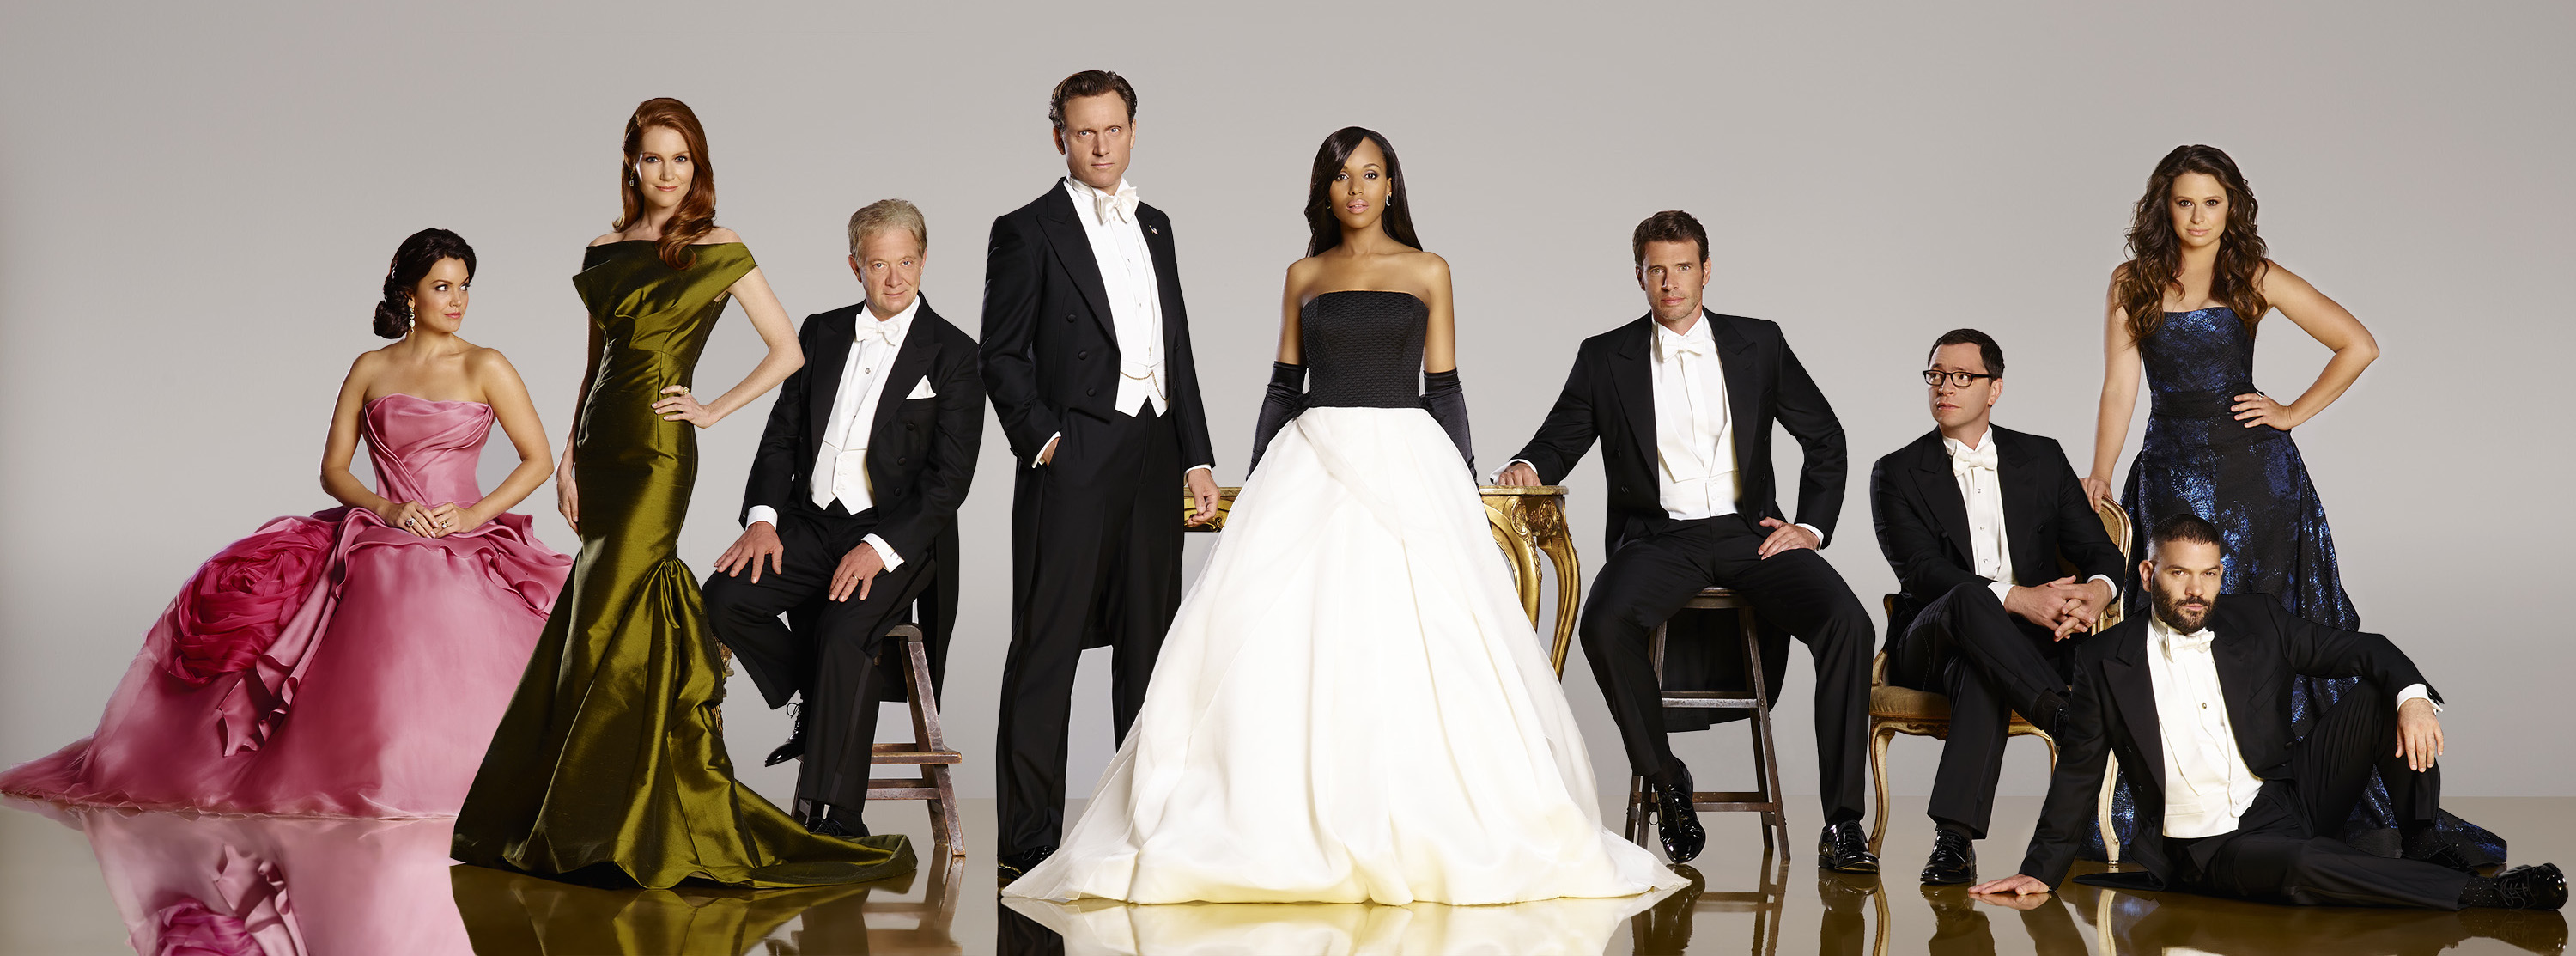 "SCANDAL - ABC's ""Scandal"" stars Bellamy Young as First Lady Mellie Grant, Darby Stanchfield as Abby Whelan, Jeff Perry as Cyrus, Tony Goldwyn as President Fitzgerald Grant, Kerry Washington as Olivia Pope, Scott Foley as Jake Ballard, Joshua Malina as David Rosen, Guillermo Diaz as Huck and Katie Lowes as Quinn Perkins. (ABC/Craig Sjodin)"